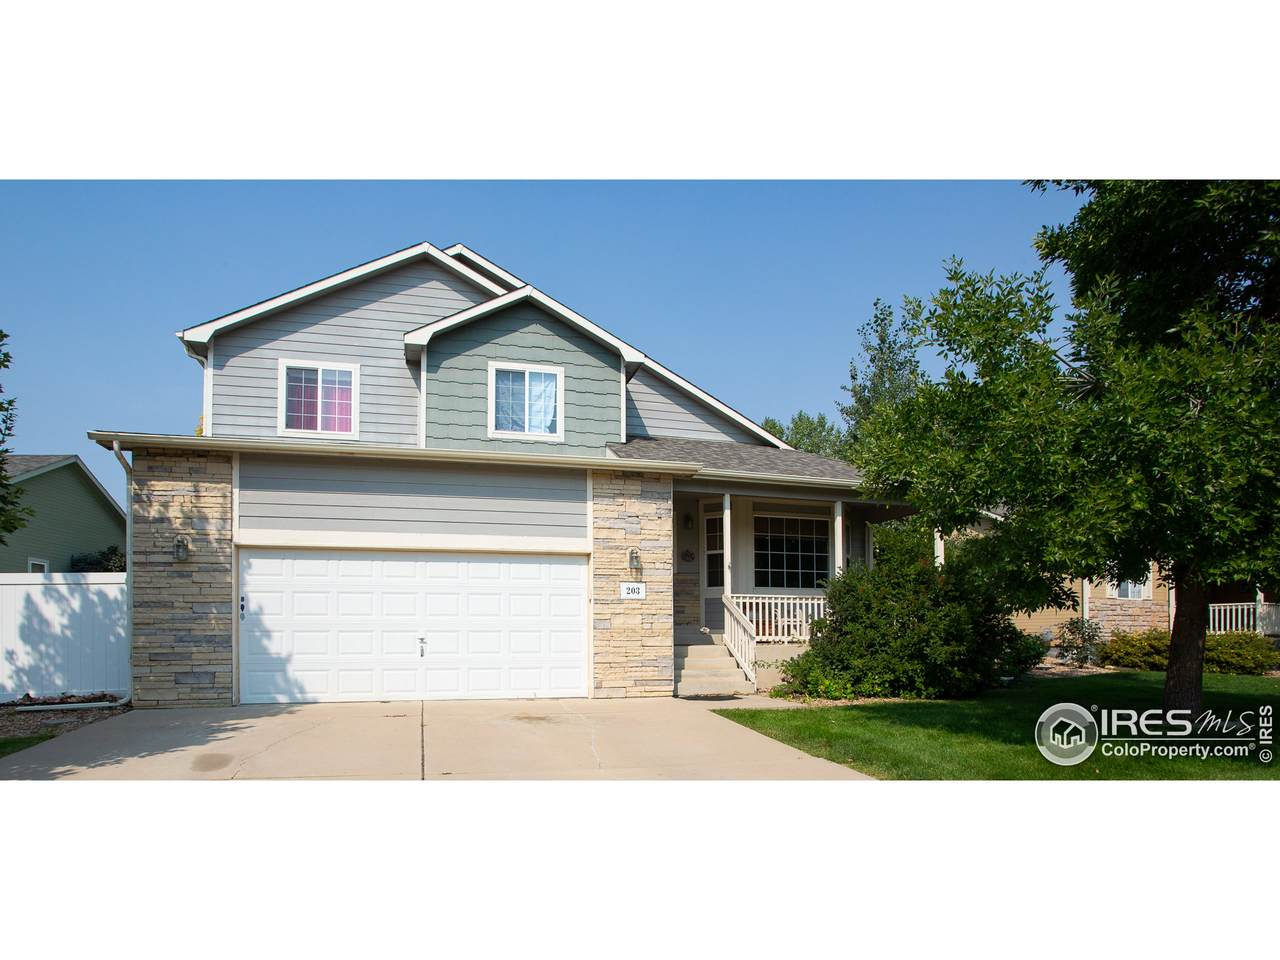 203 Green Teal Dr - Photo 1